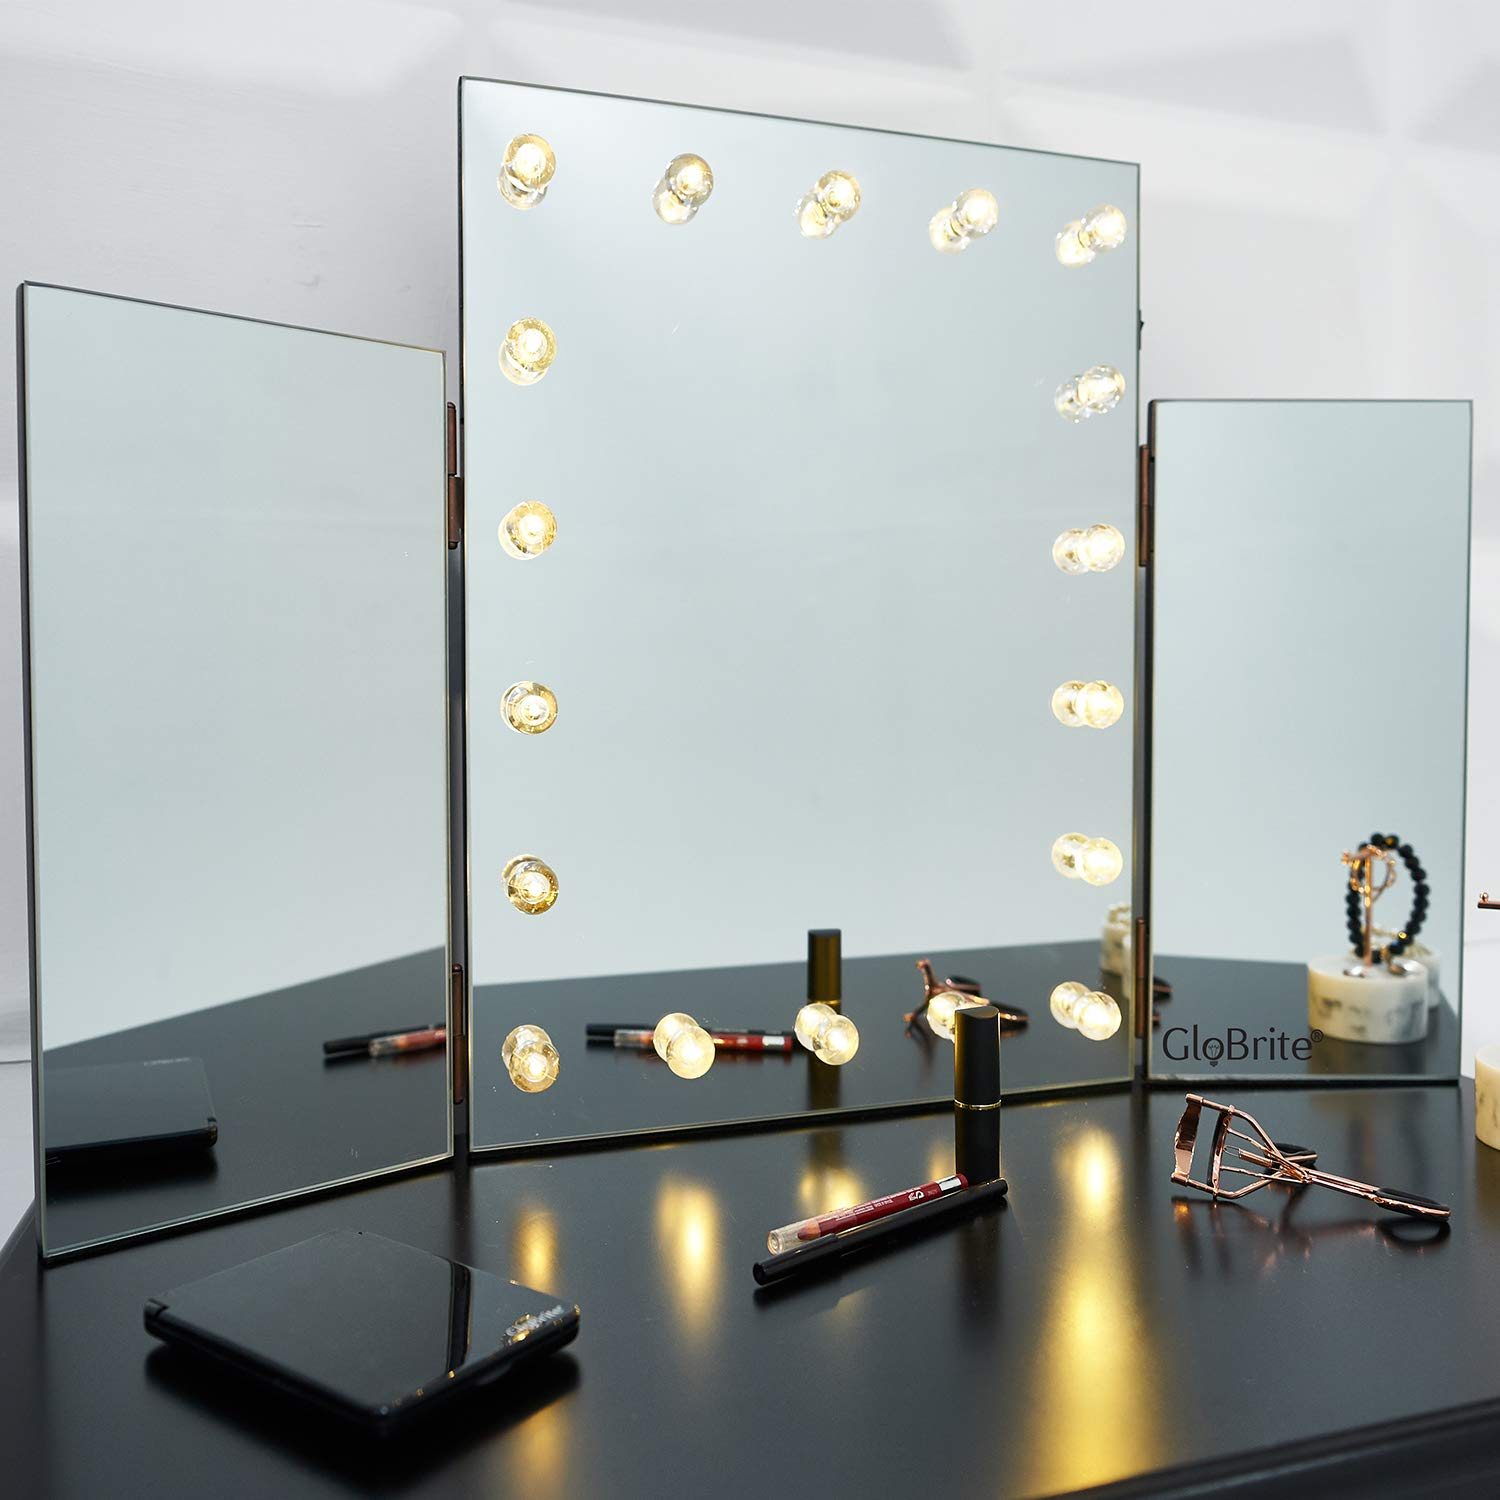 GloBrite LED Light Up Glass Hollywood Glamour Dressing Table Cosmetic Vanity Tri Mirror - Bright Lights/Great for Doing Make Up (Medium)